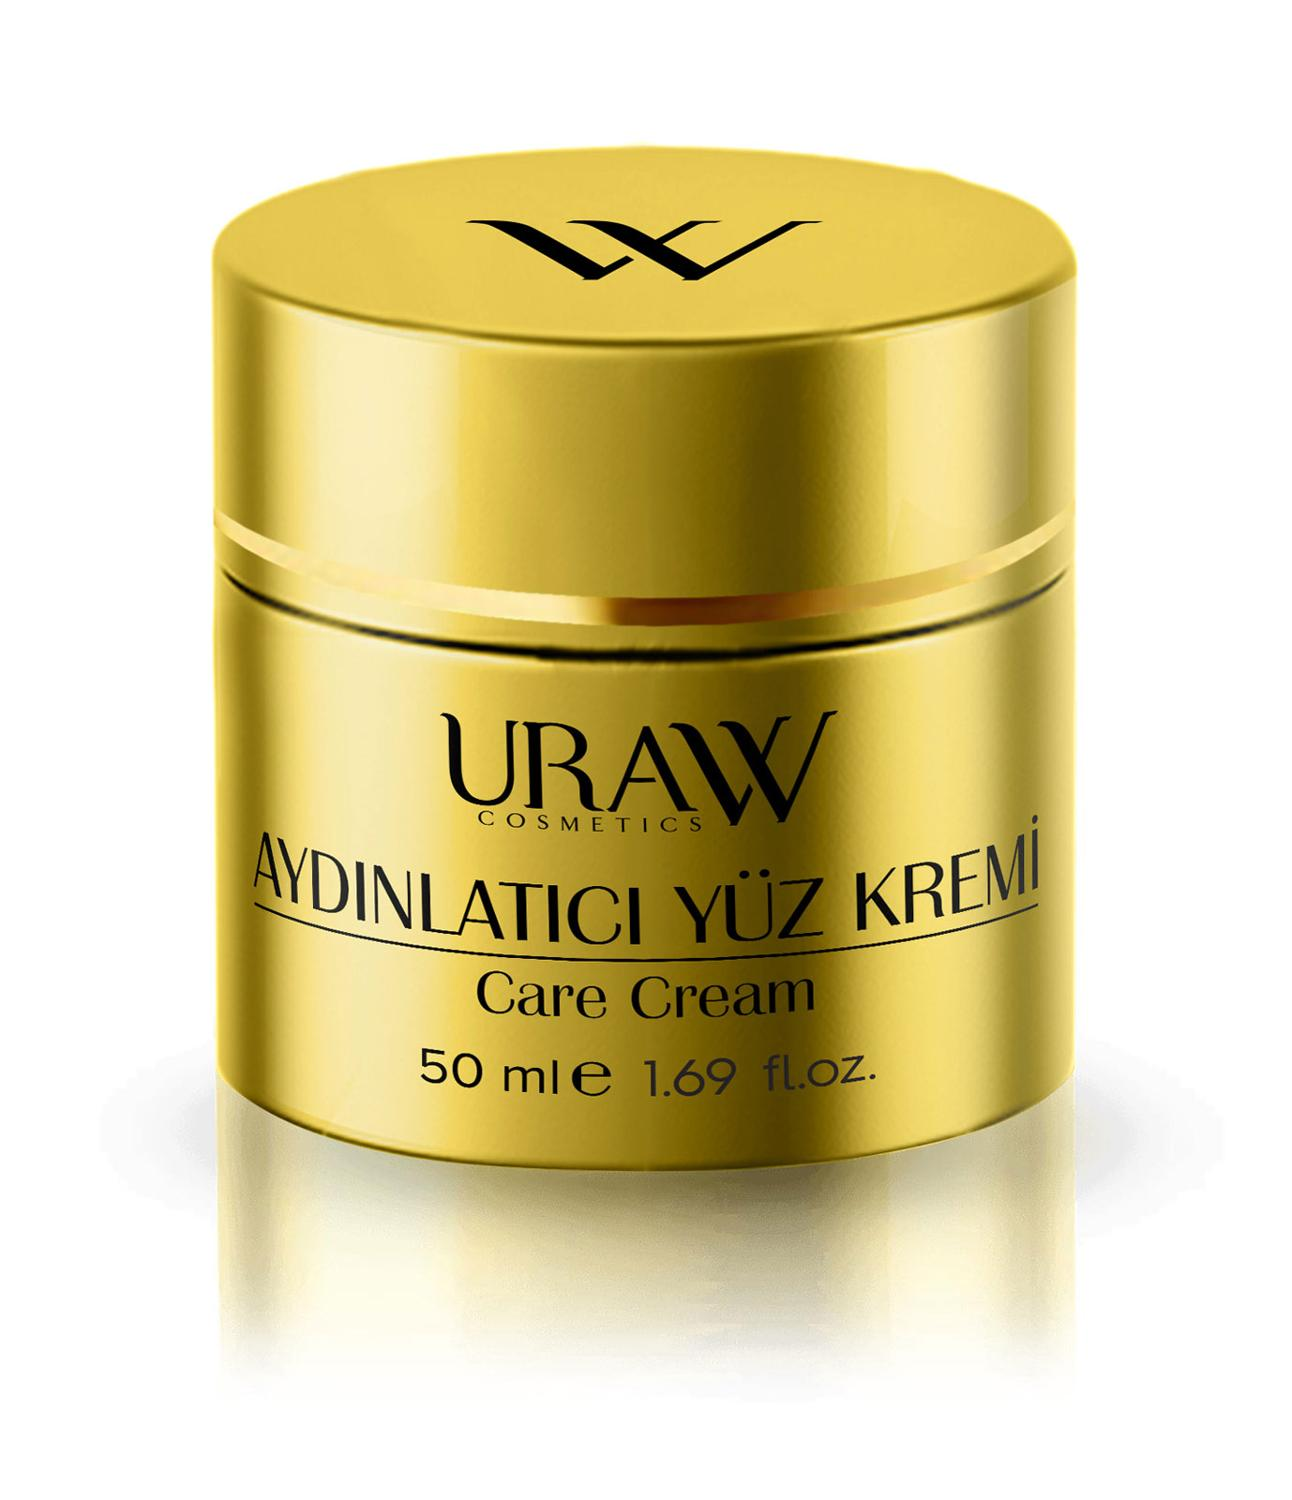 URAW ILLUMINATING SPRING CREAM Allows To Show A Brightening Effect On The Skin